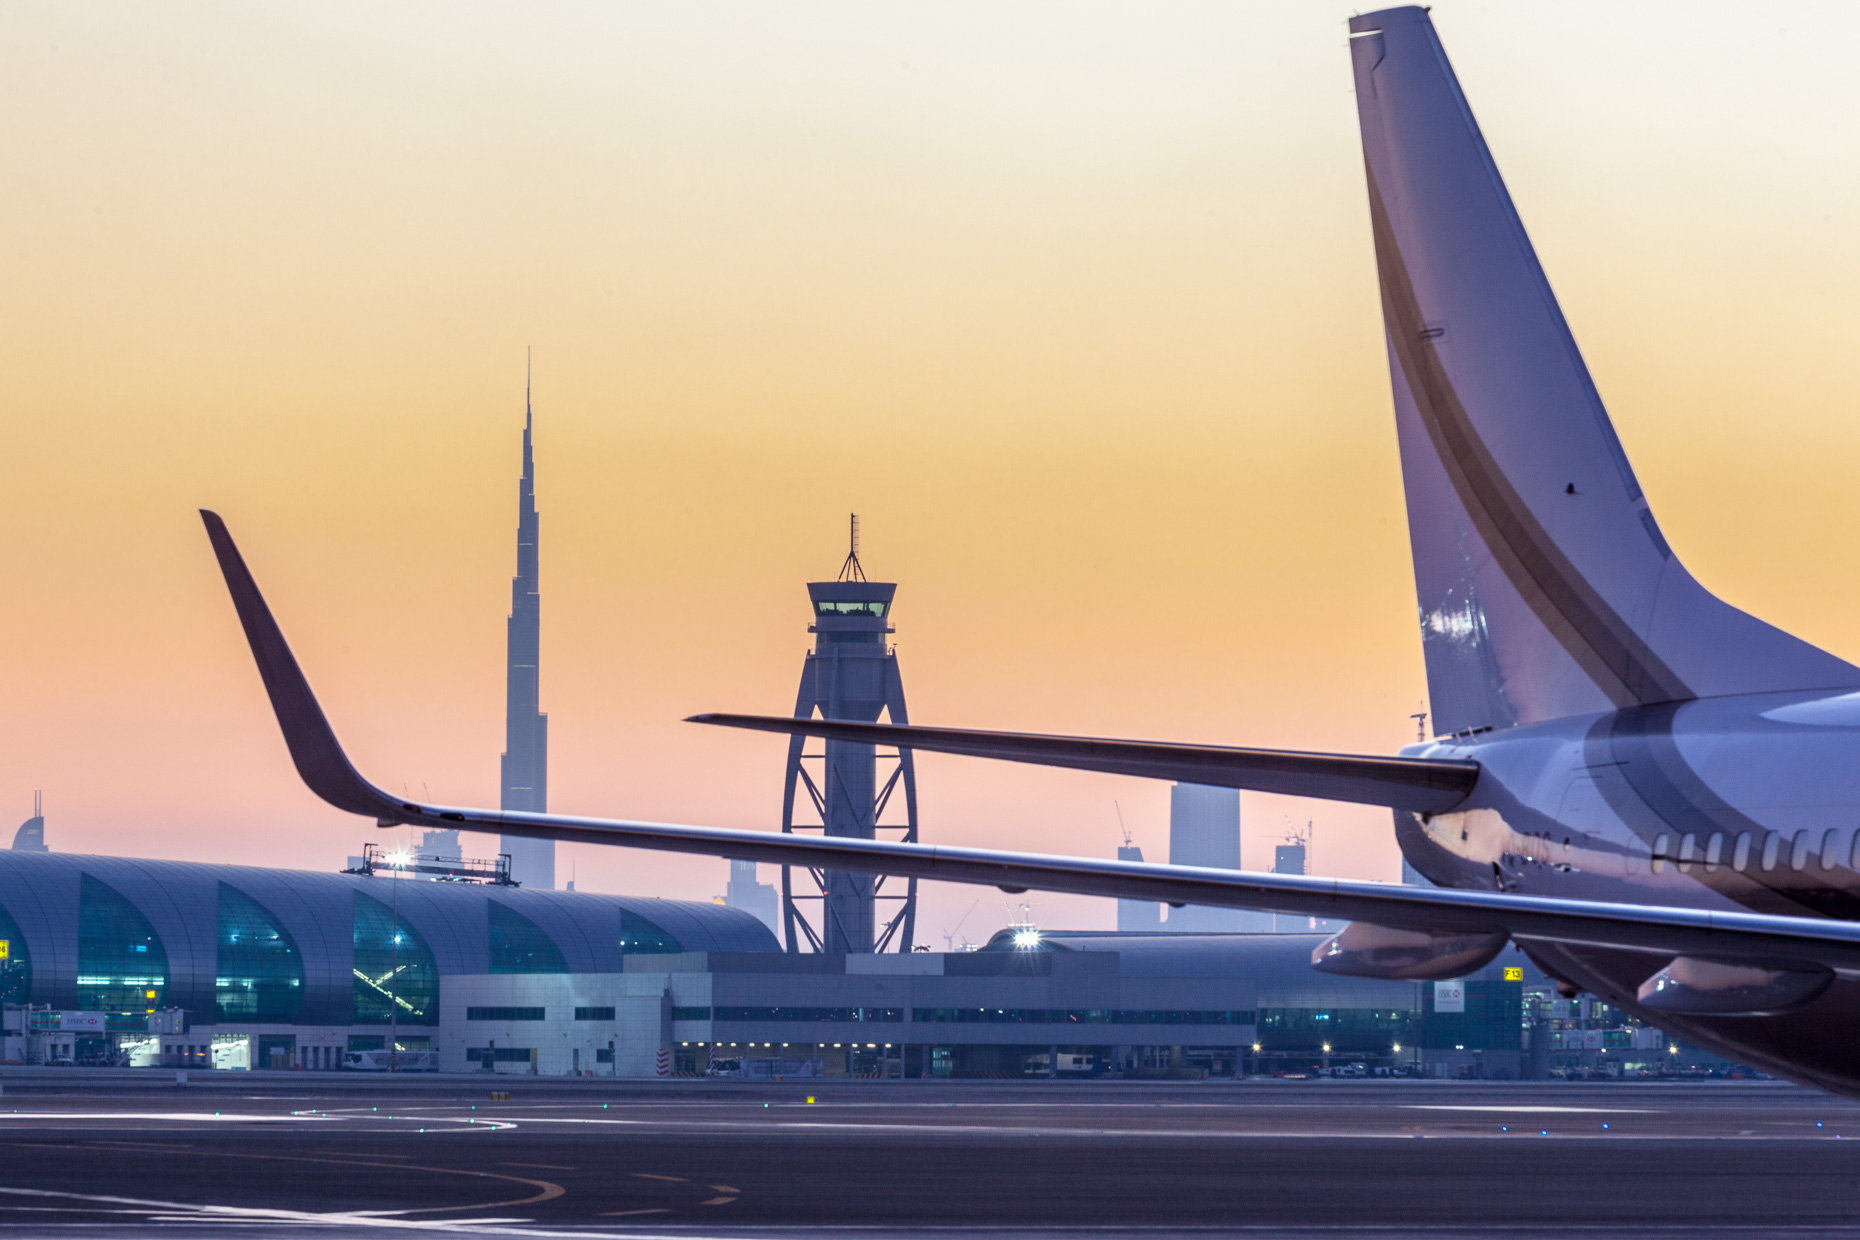 Sunset Duba Airport Tower | UAE